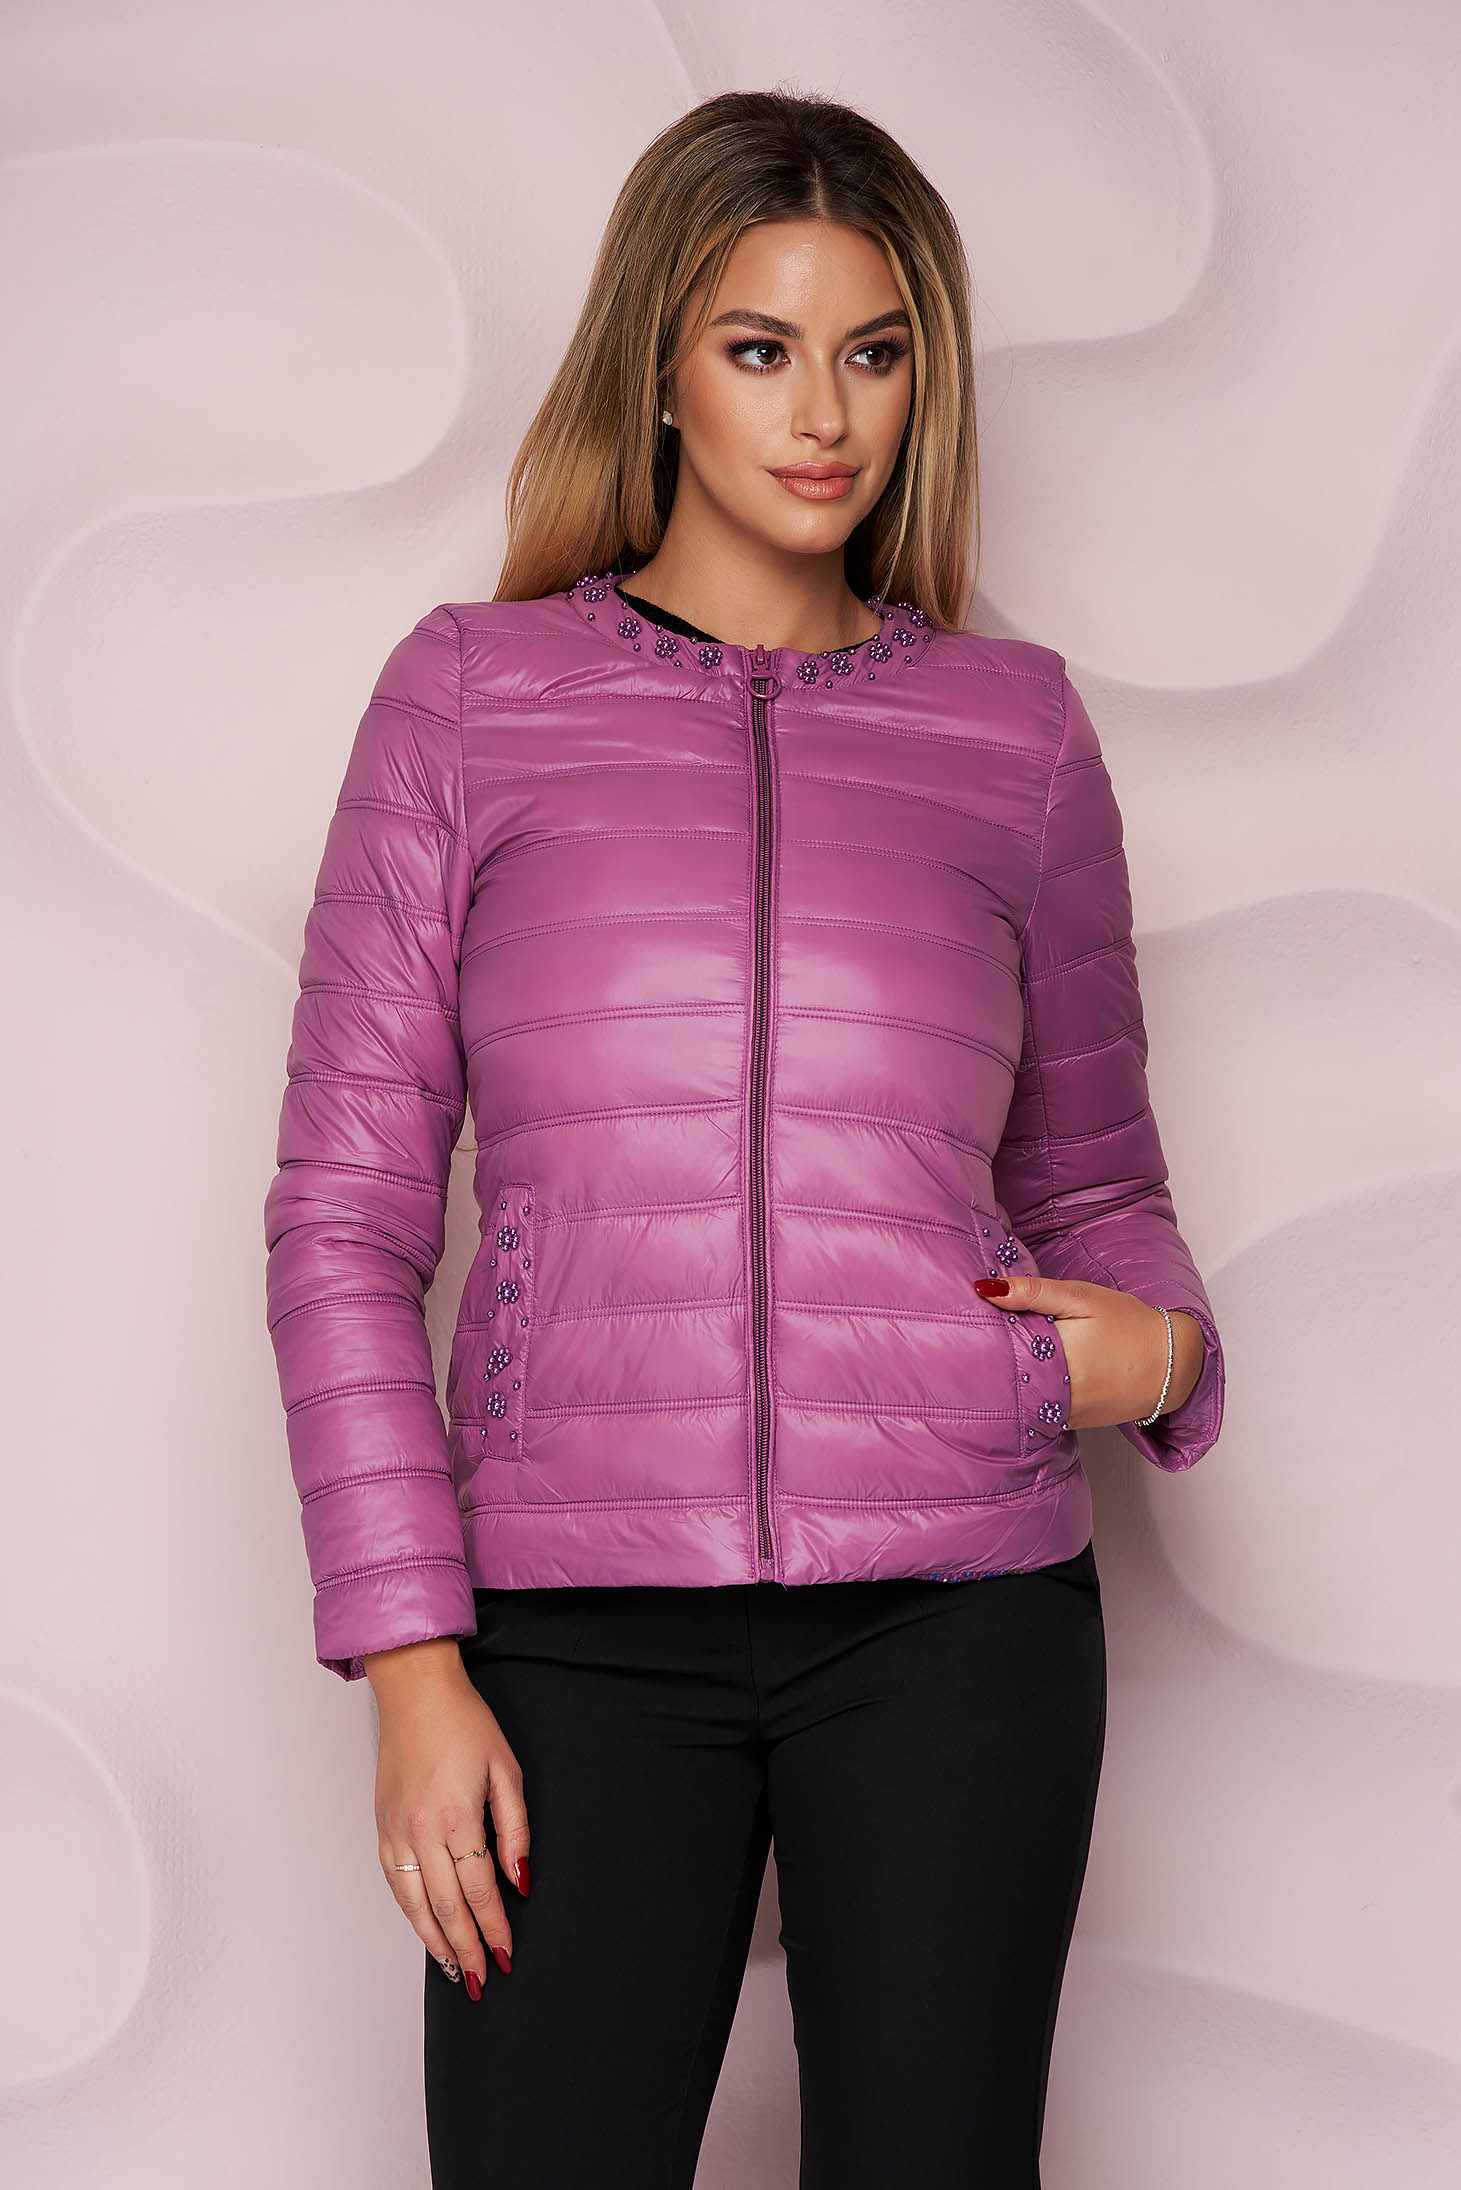 Purple jacket from slicker thin fabric with pockets with pearls straight